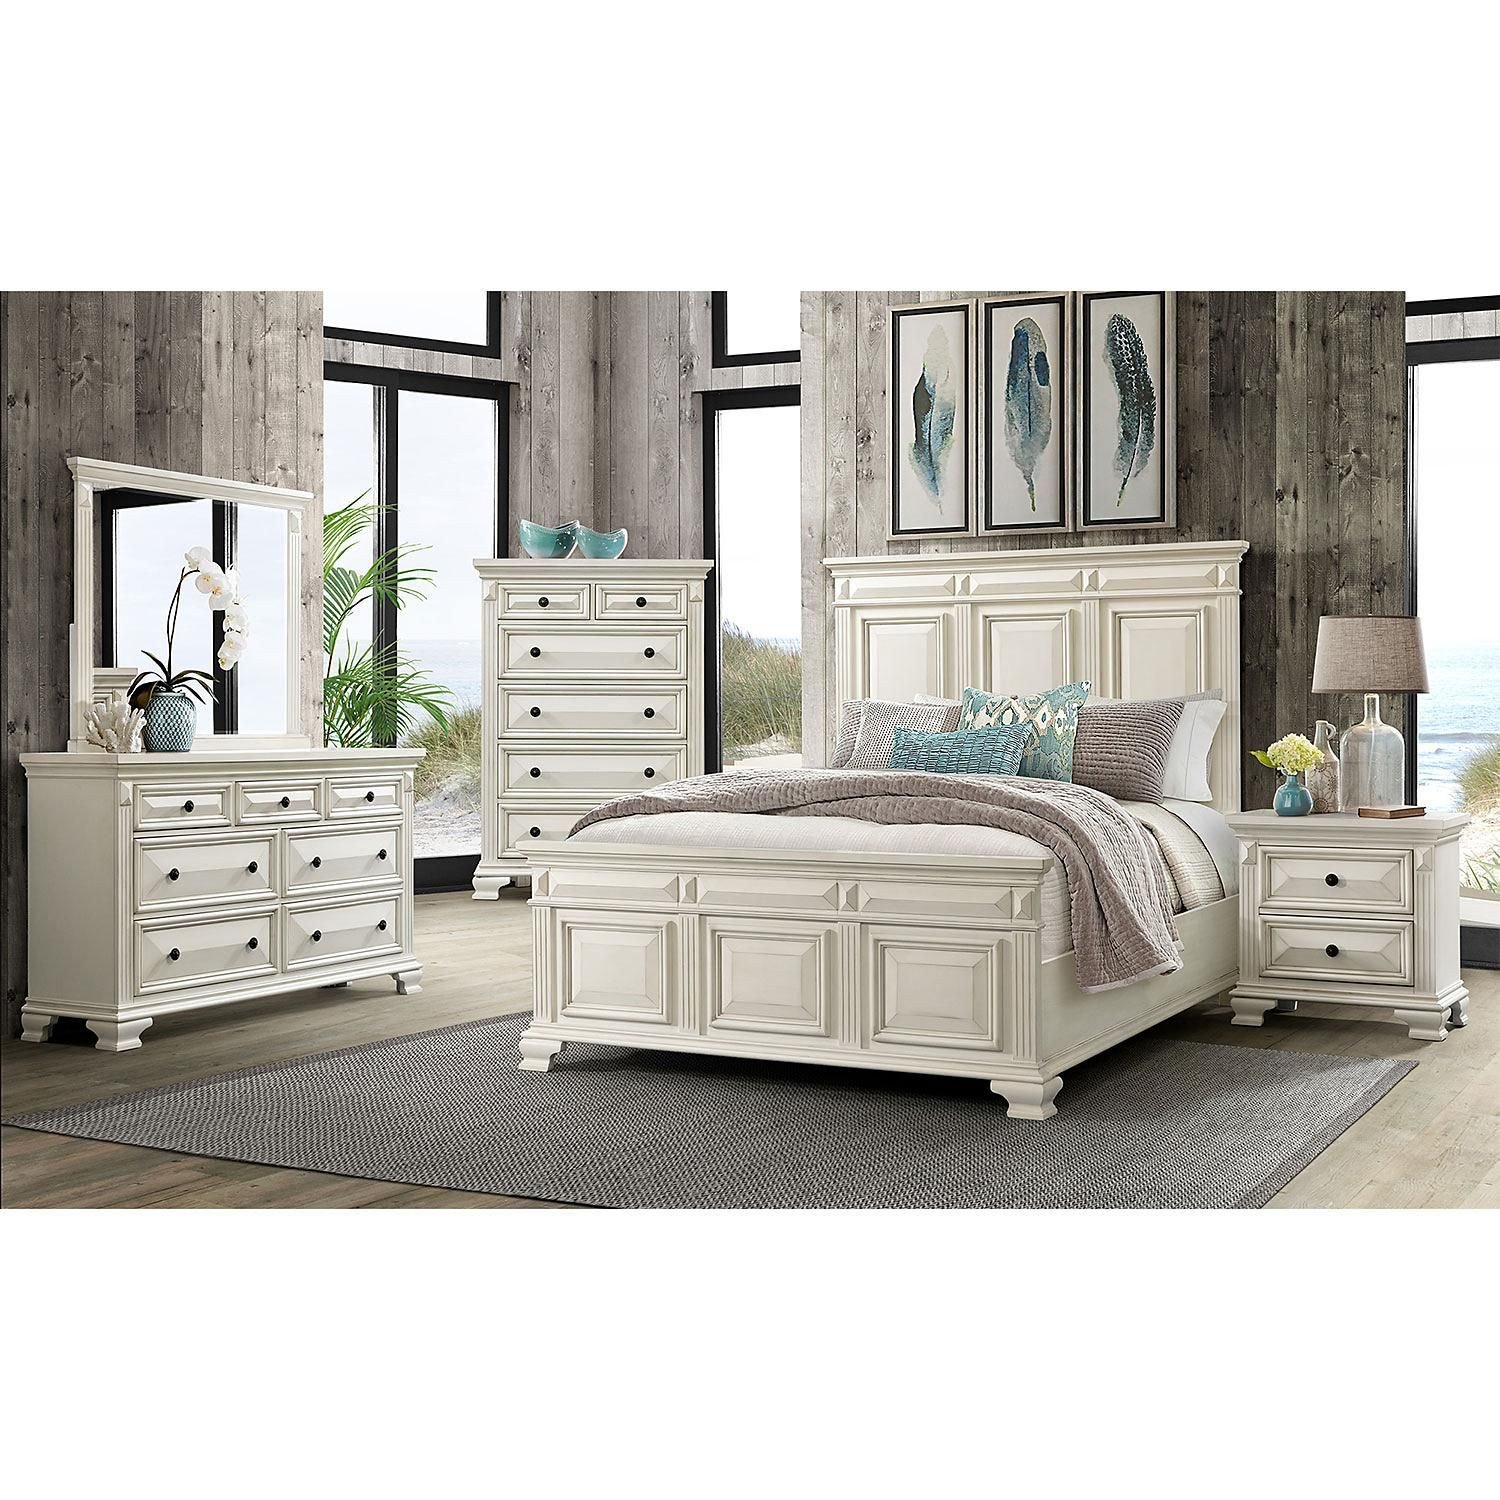 King Bedroom Set for Sale Lovely $1599 00 society Den Trent Panel 6 Piece King Bedroom Set